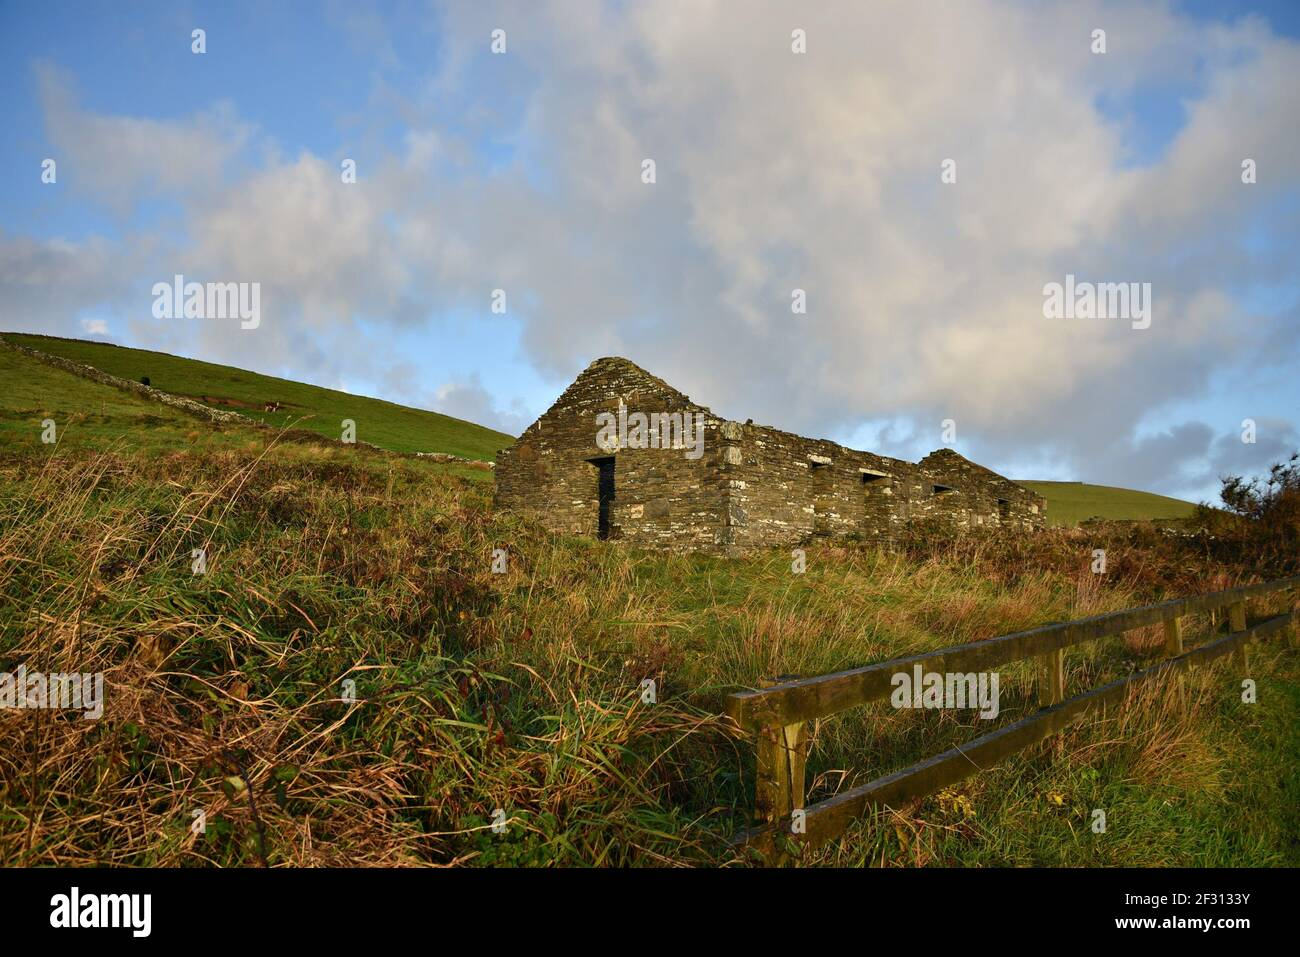 Irish landscape with an abandoned stone house in the countryside of Doolin in County Clare, Ireland. Stock Photo